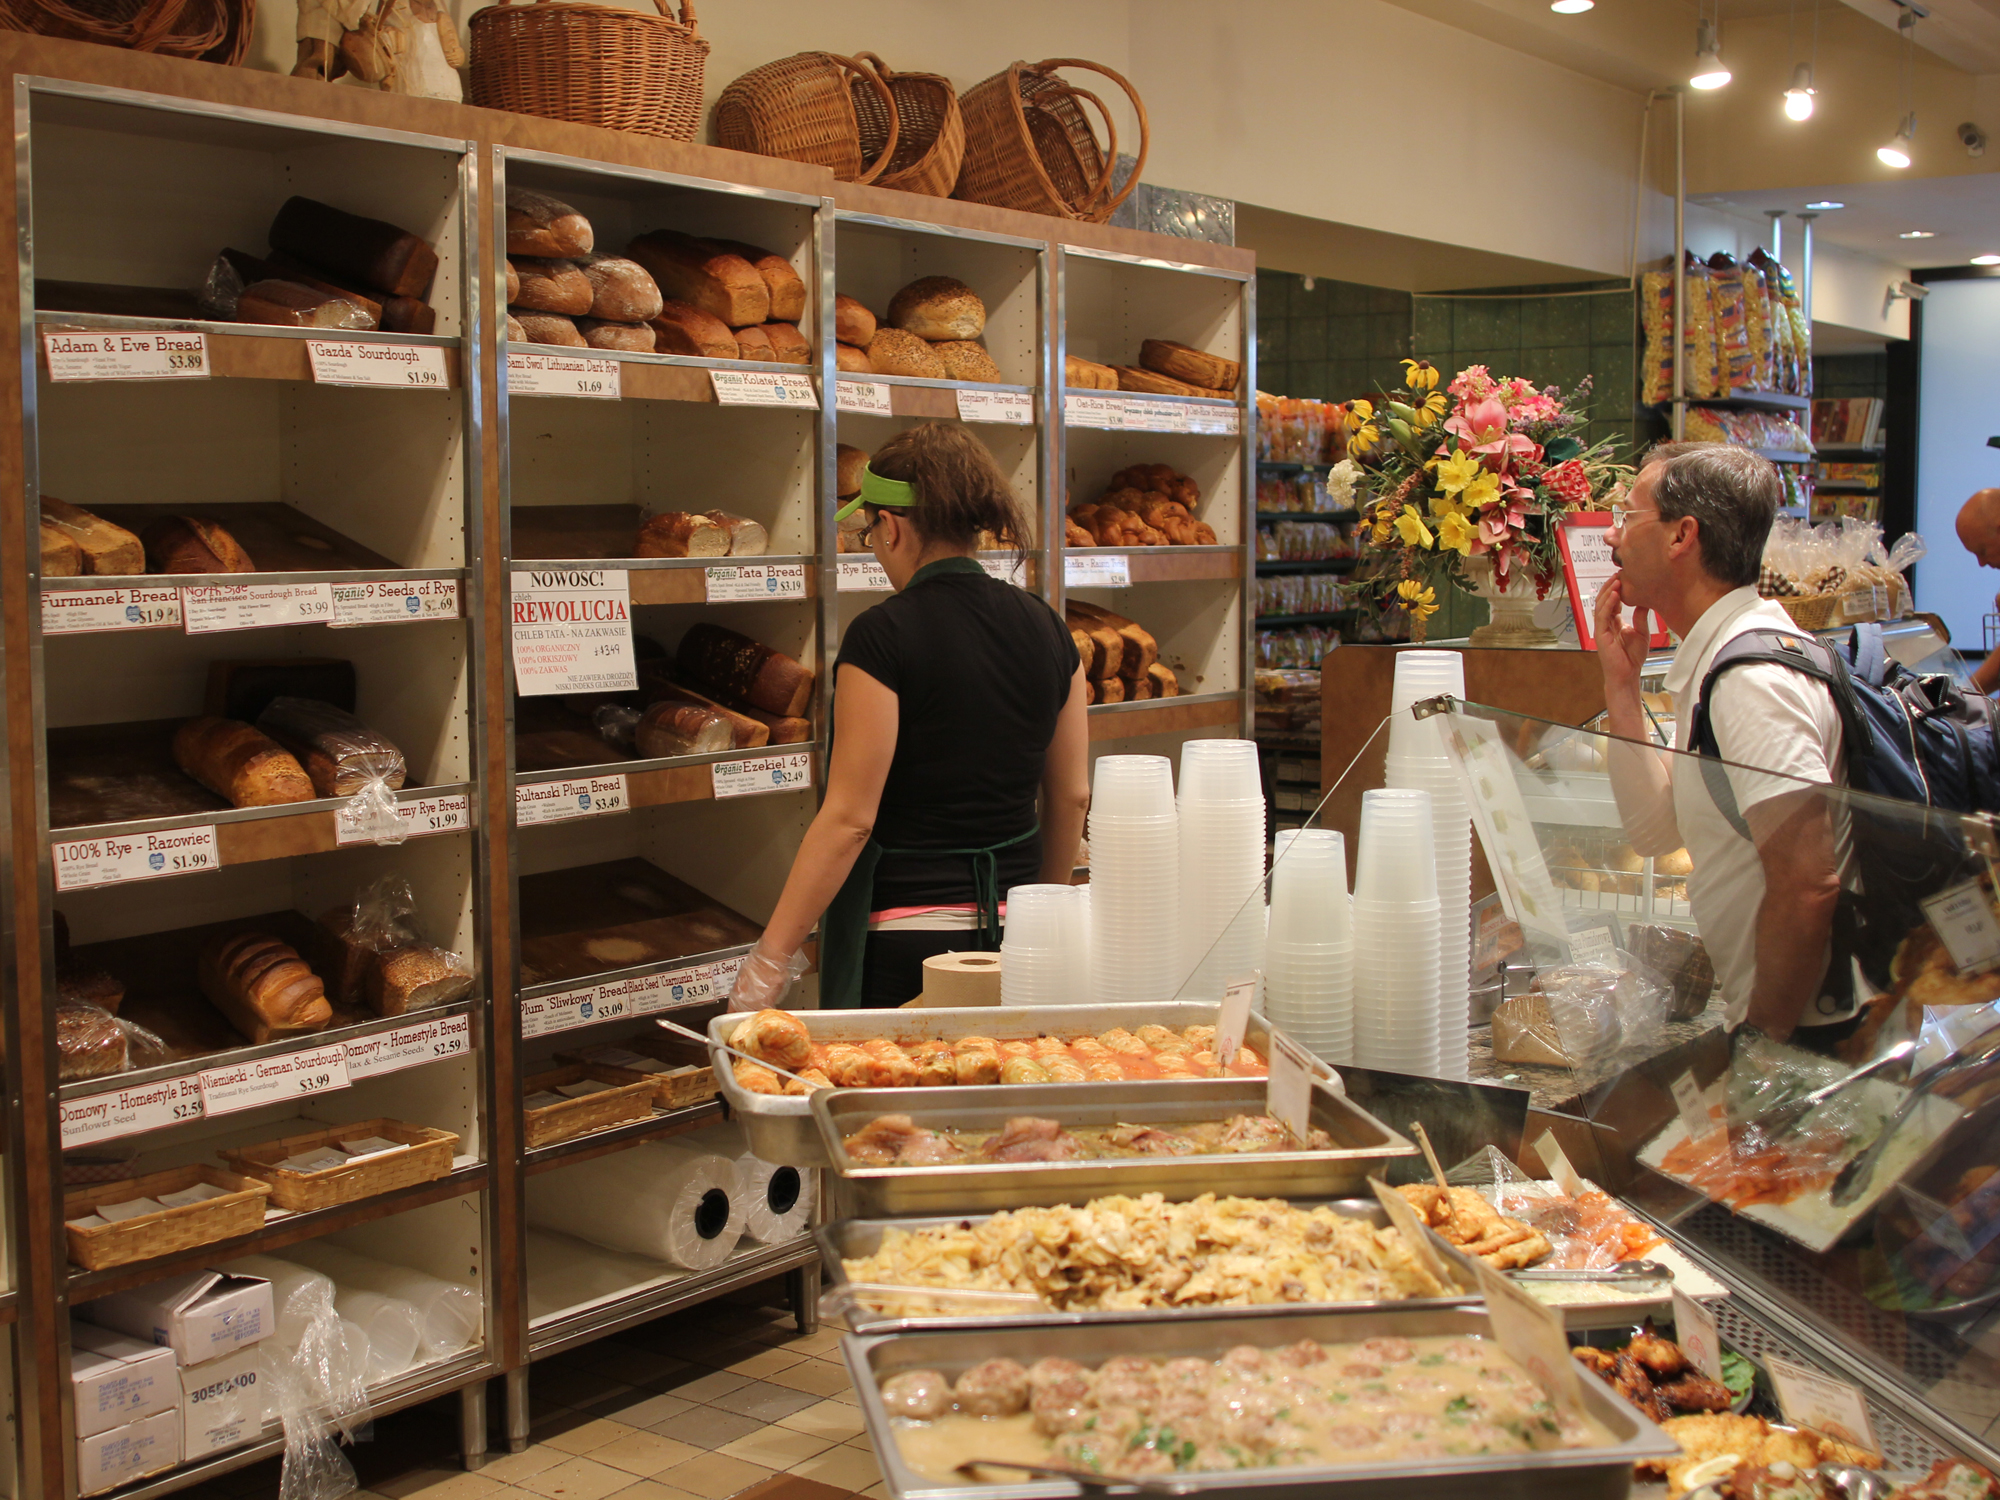 SPEAKING ORGANIC IN POLISH, AT KOLATEK'S BAKERY & DELI